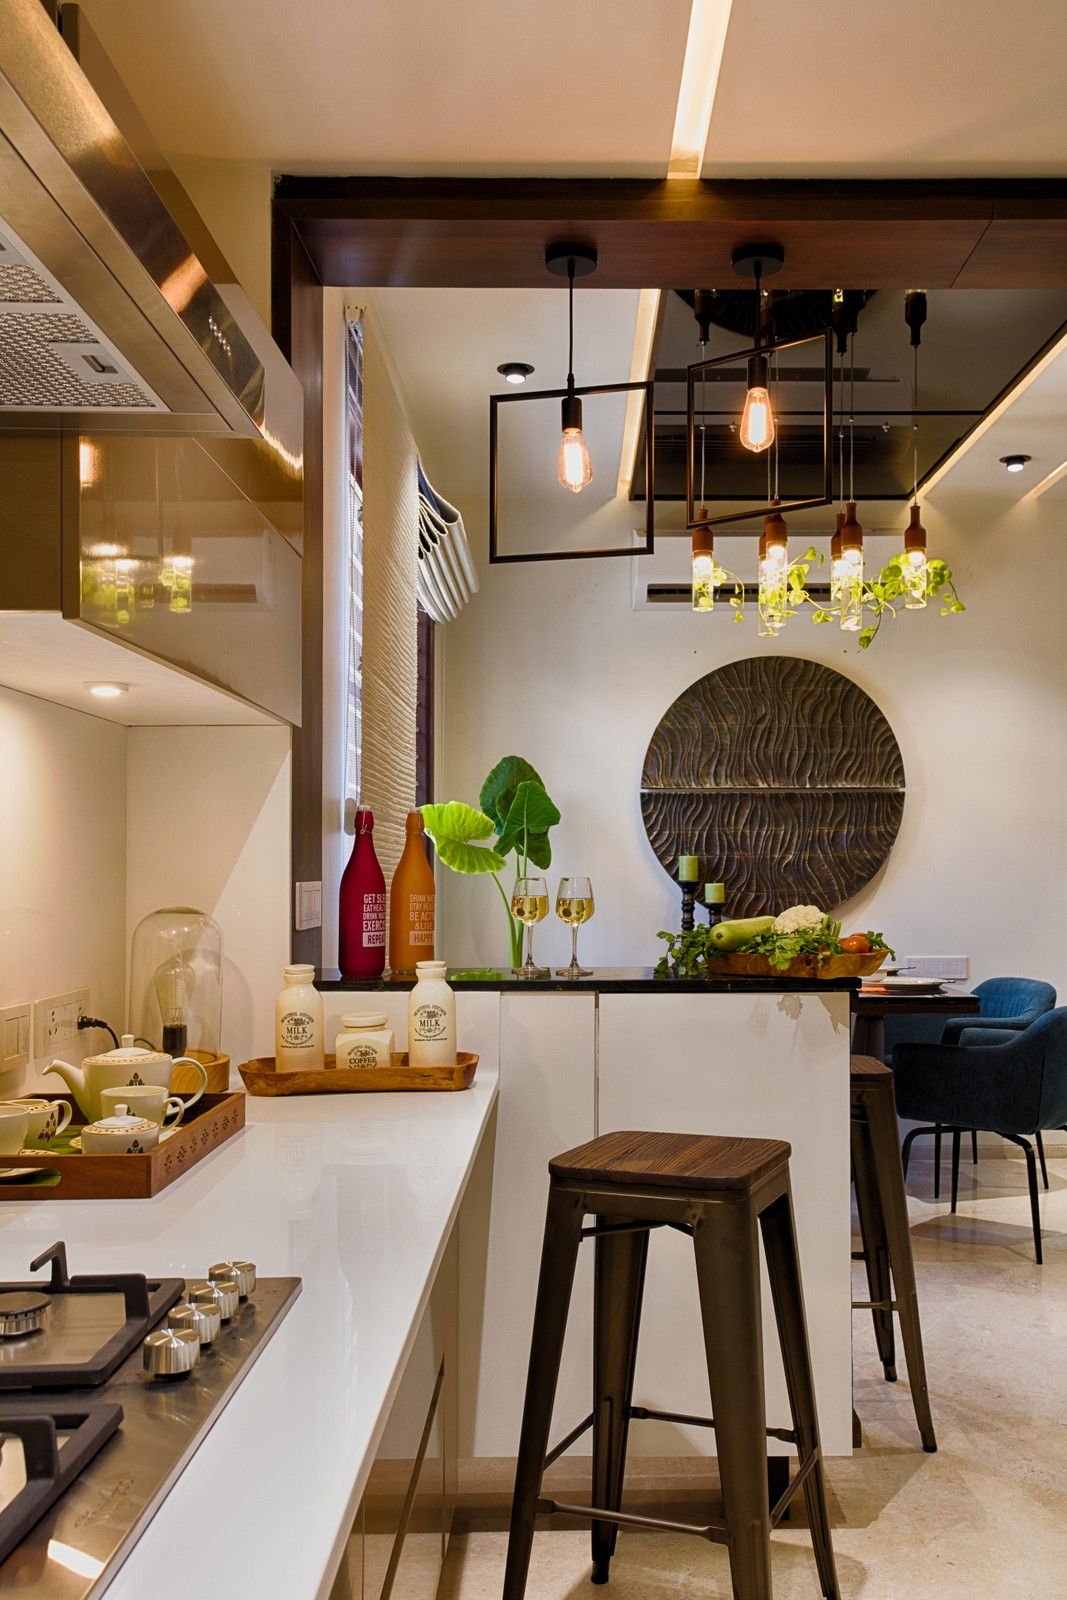 15 Indian Kitchen Design Images From Real Homes The Urban Guide